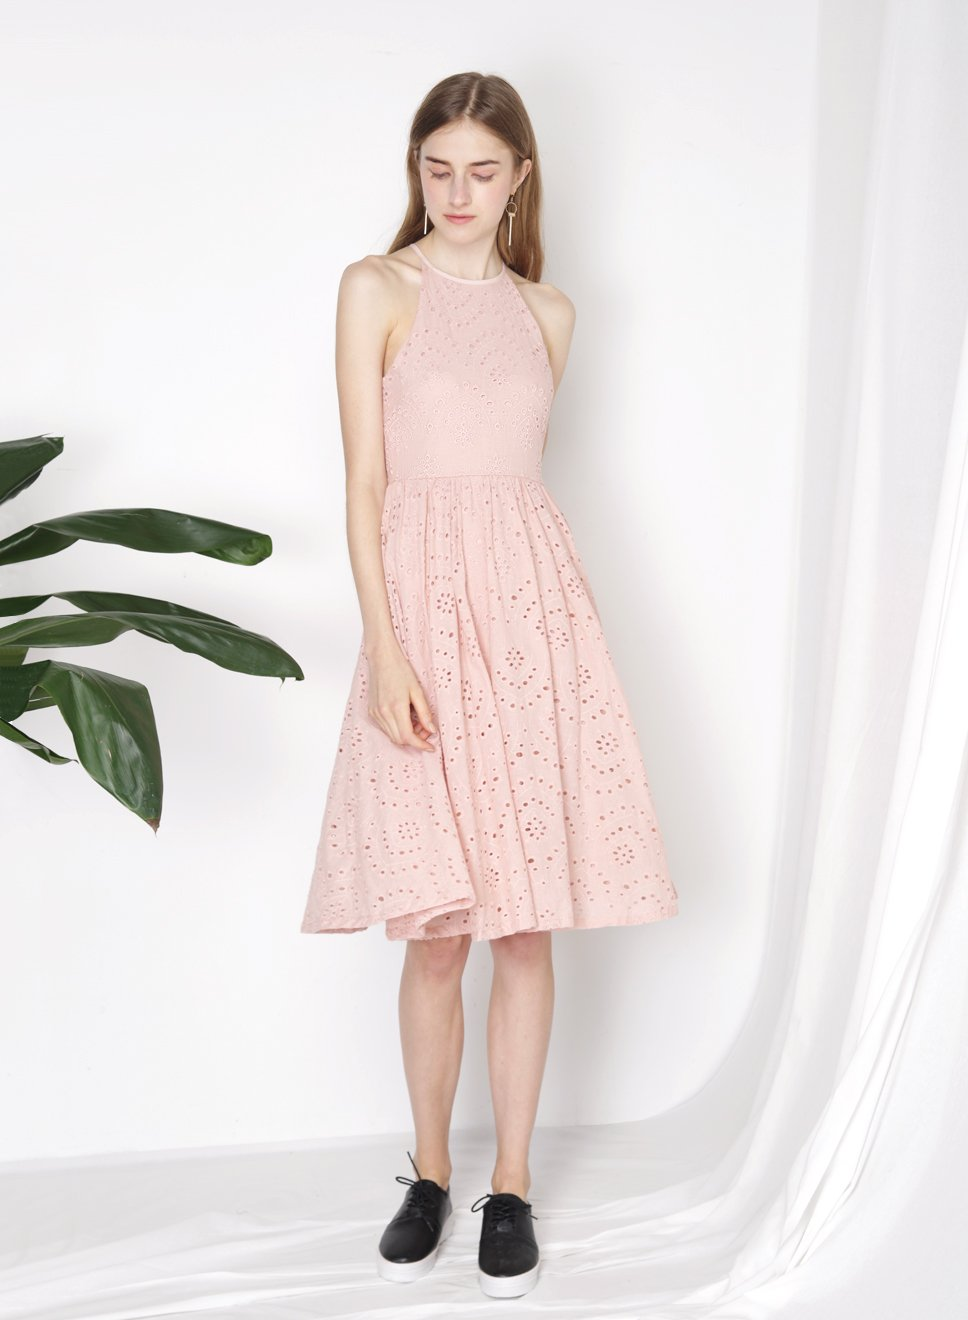 AURORA Eyelet Flared Dress (Blush) at $25.00 only sold at And Well Dressed Online Fashion Store Singapore